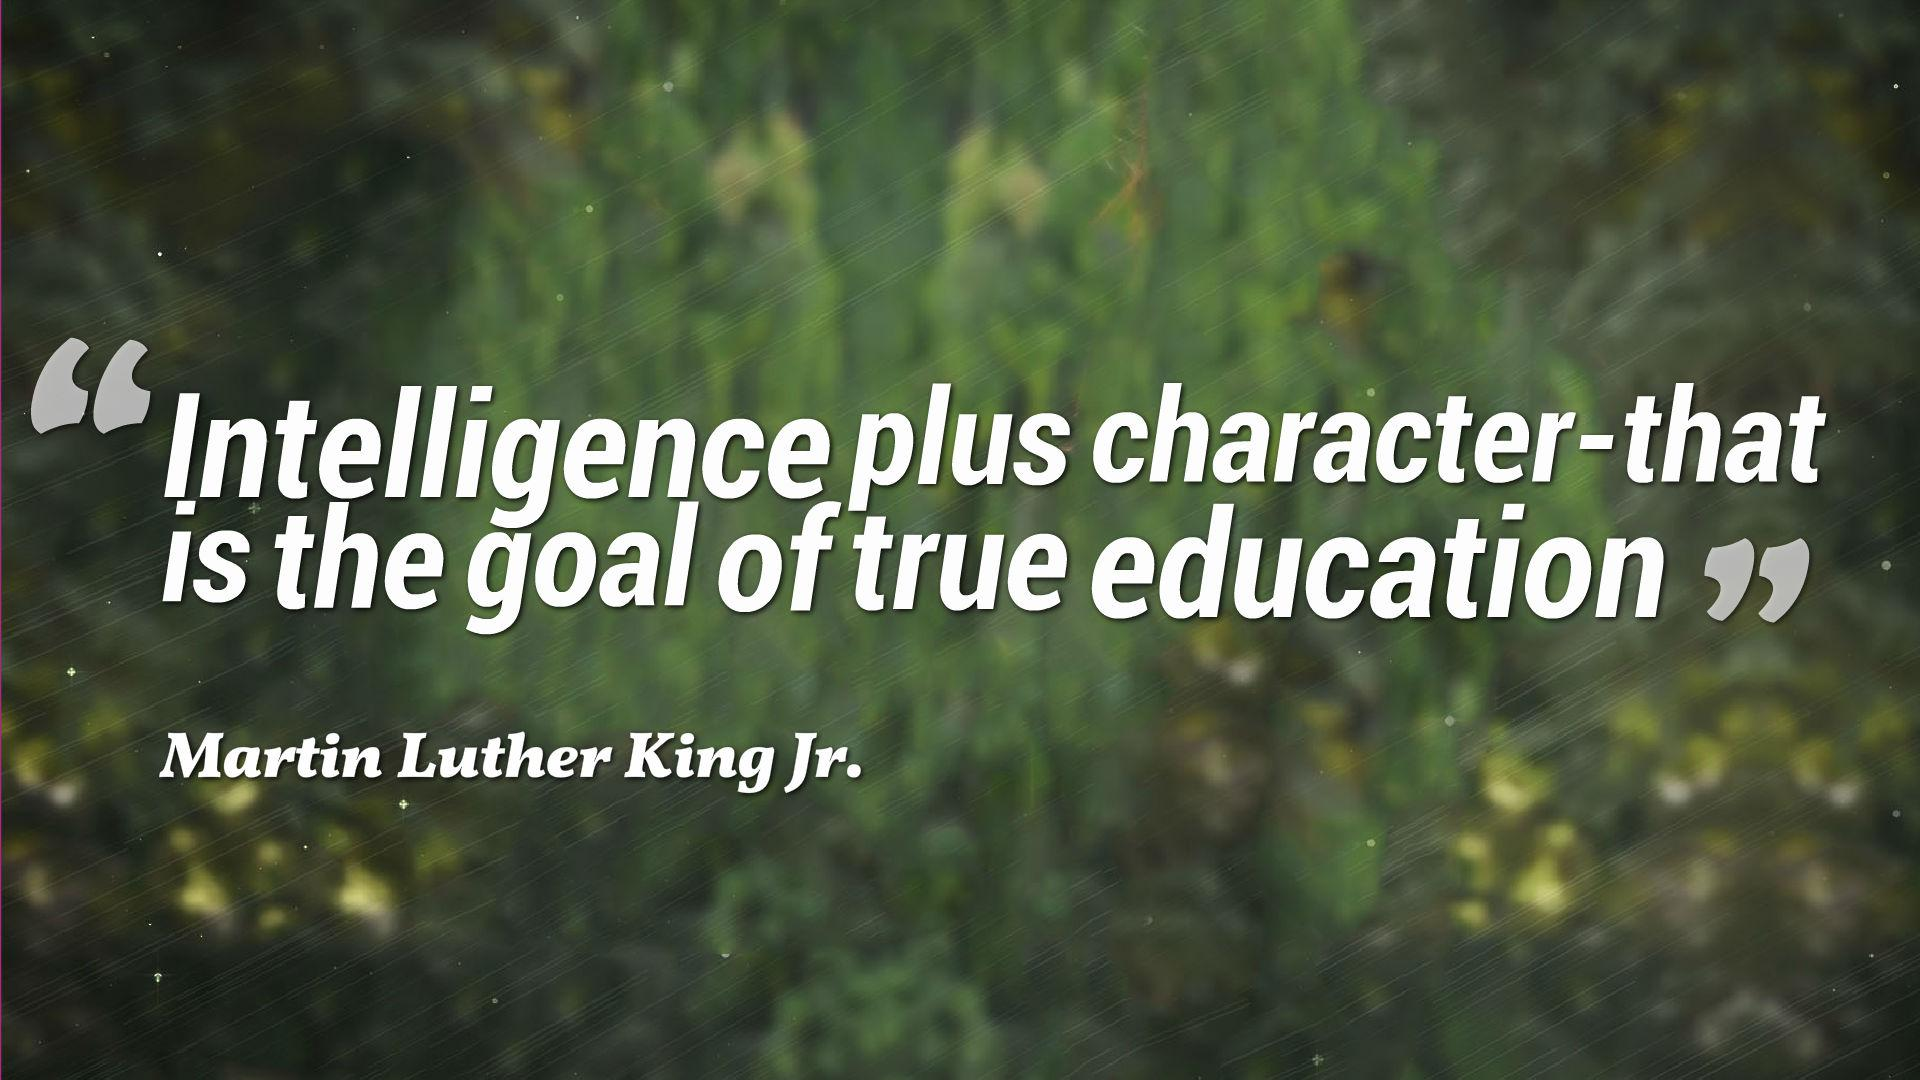 A15 quotes about education - Intelligence plus character - that is the goal of true education. - Martin Luther King Jr